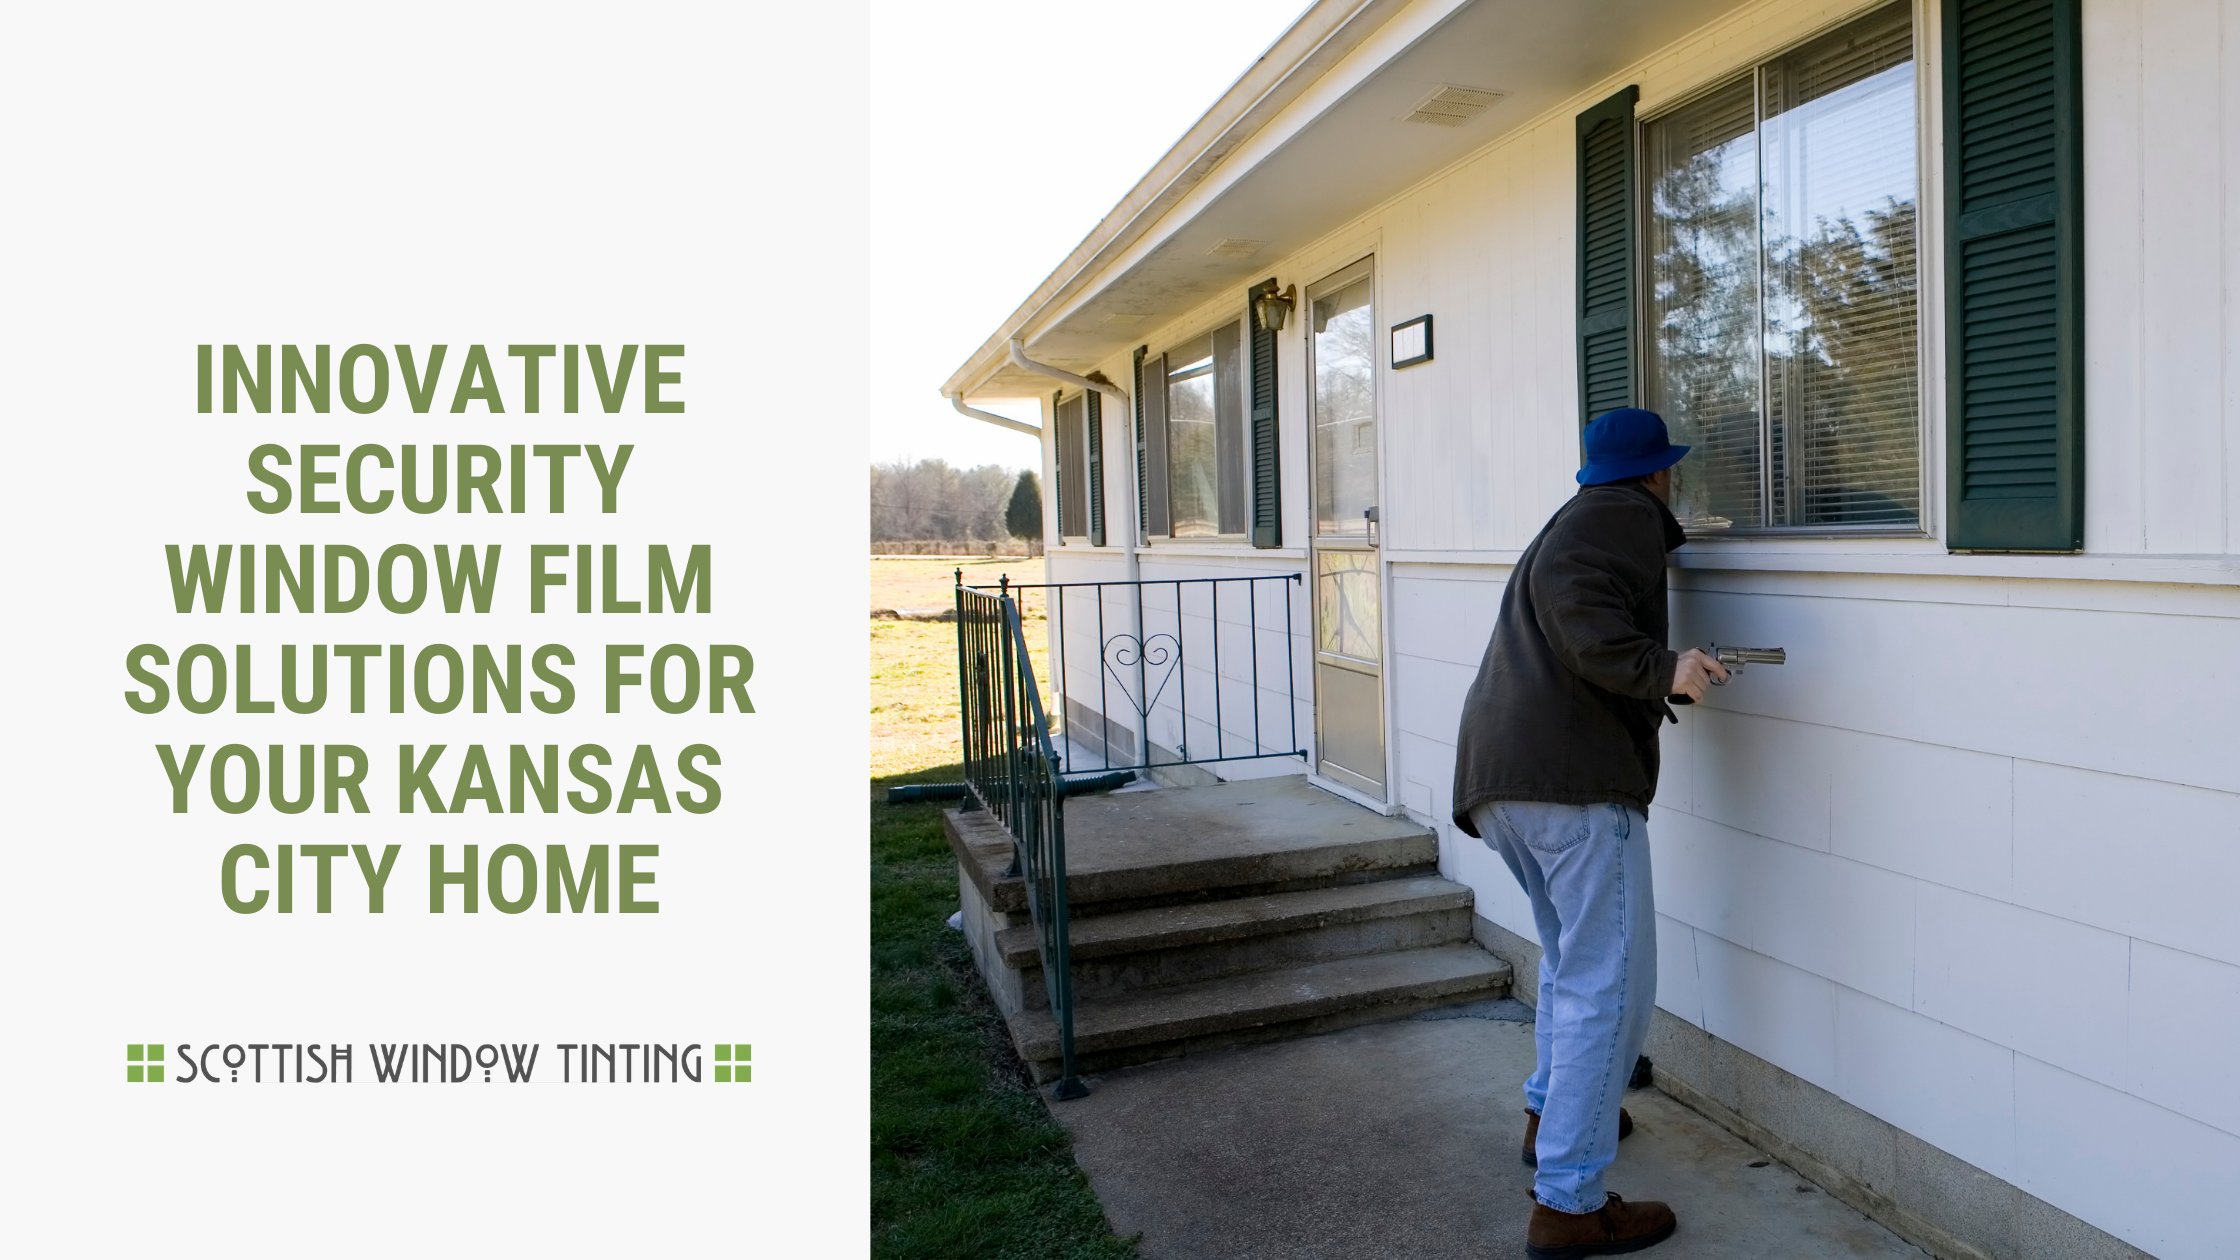 Innovative Security Window Film Solutions for your Kansas City Home